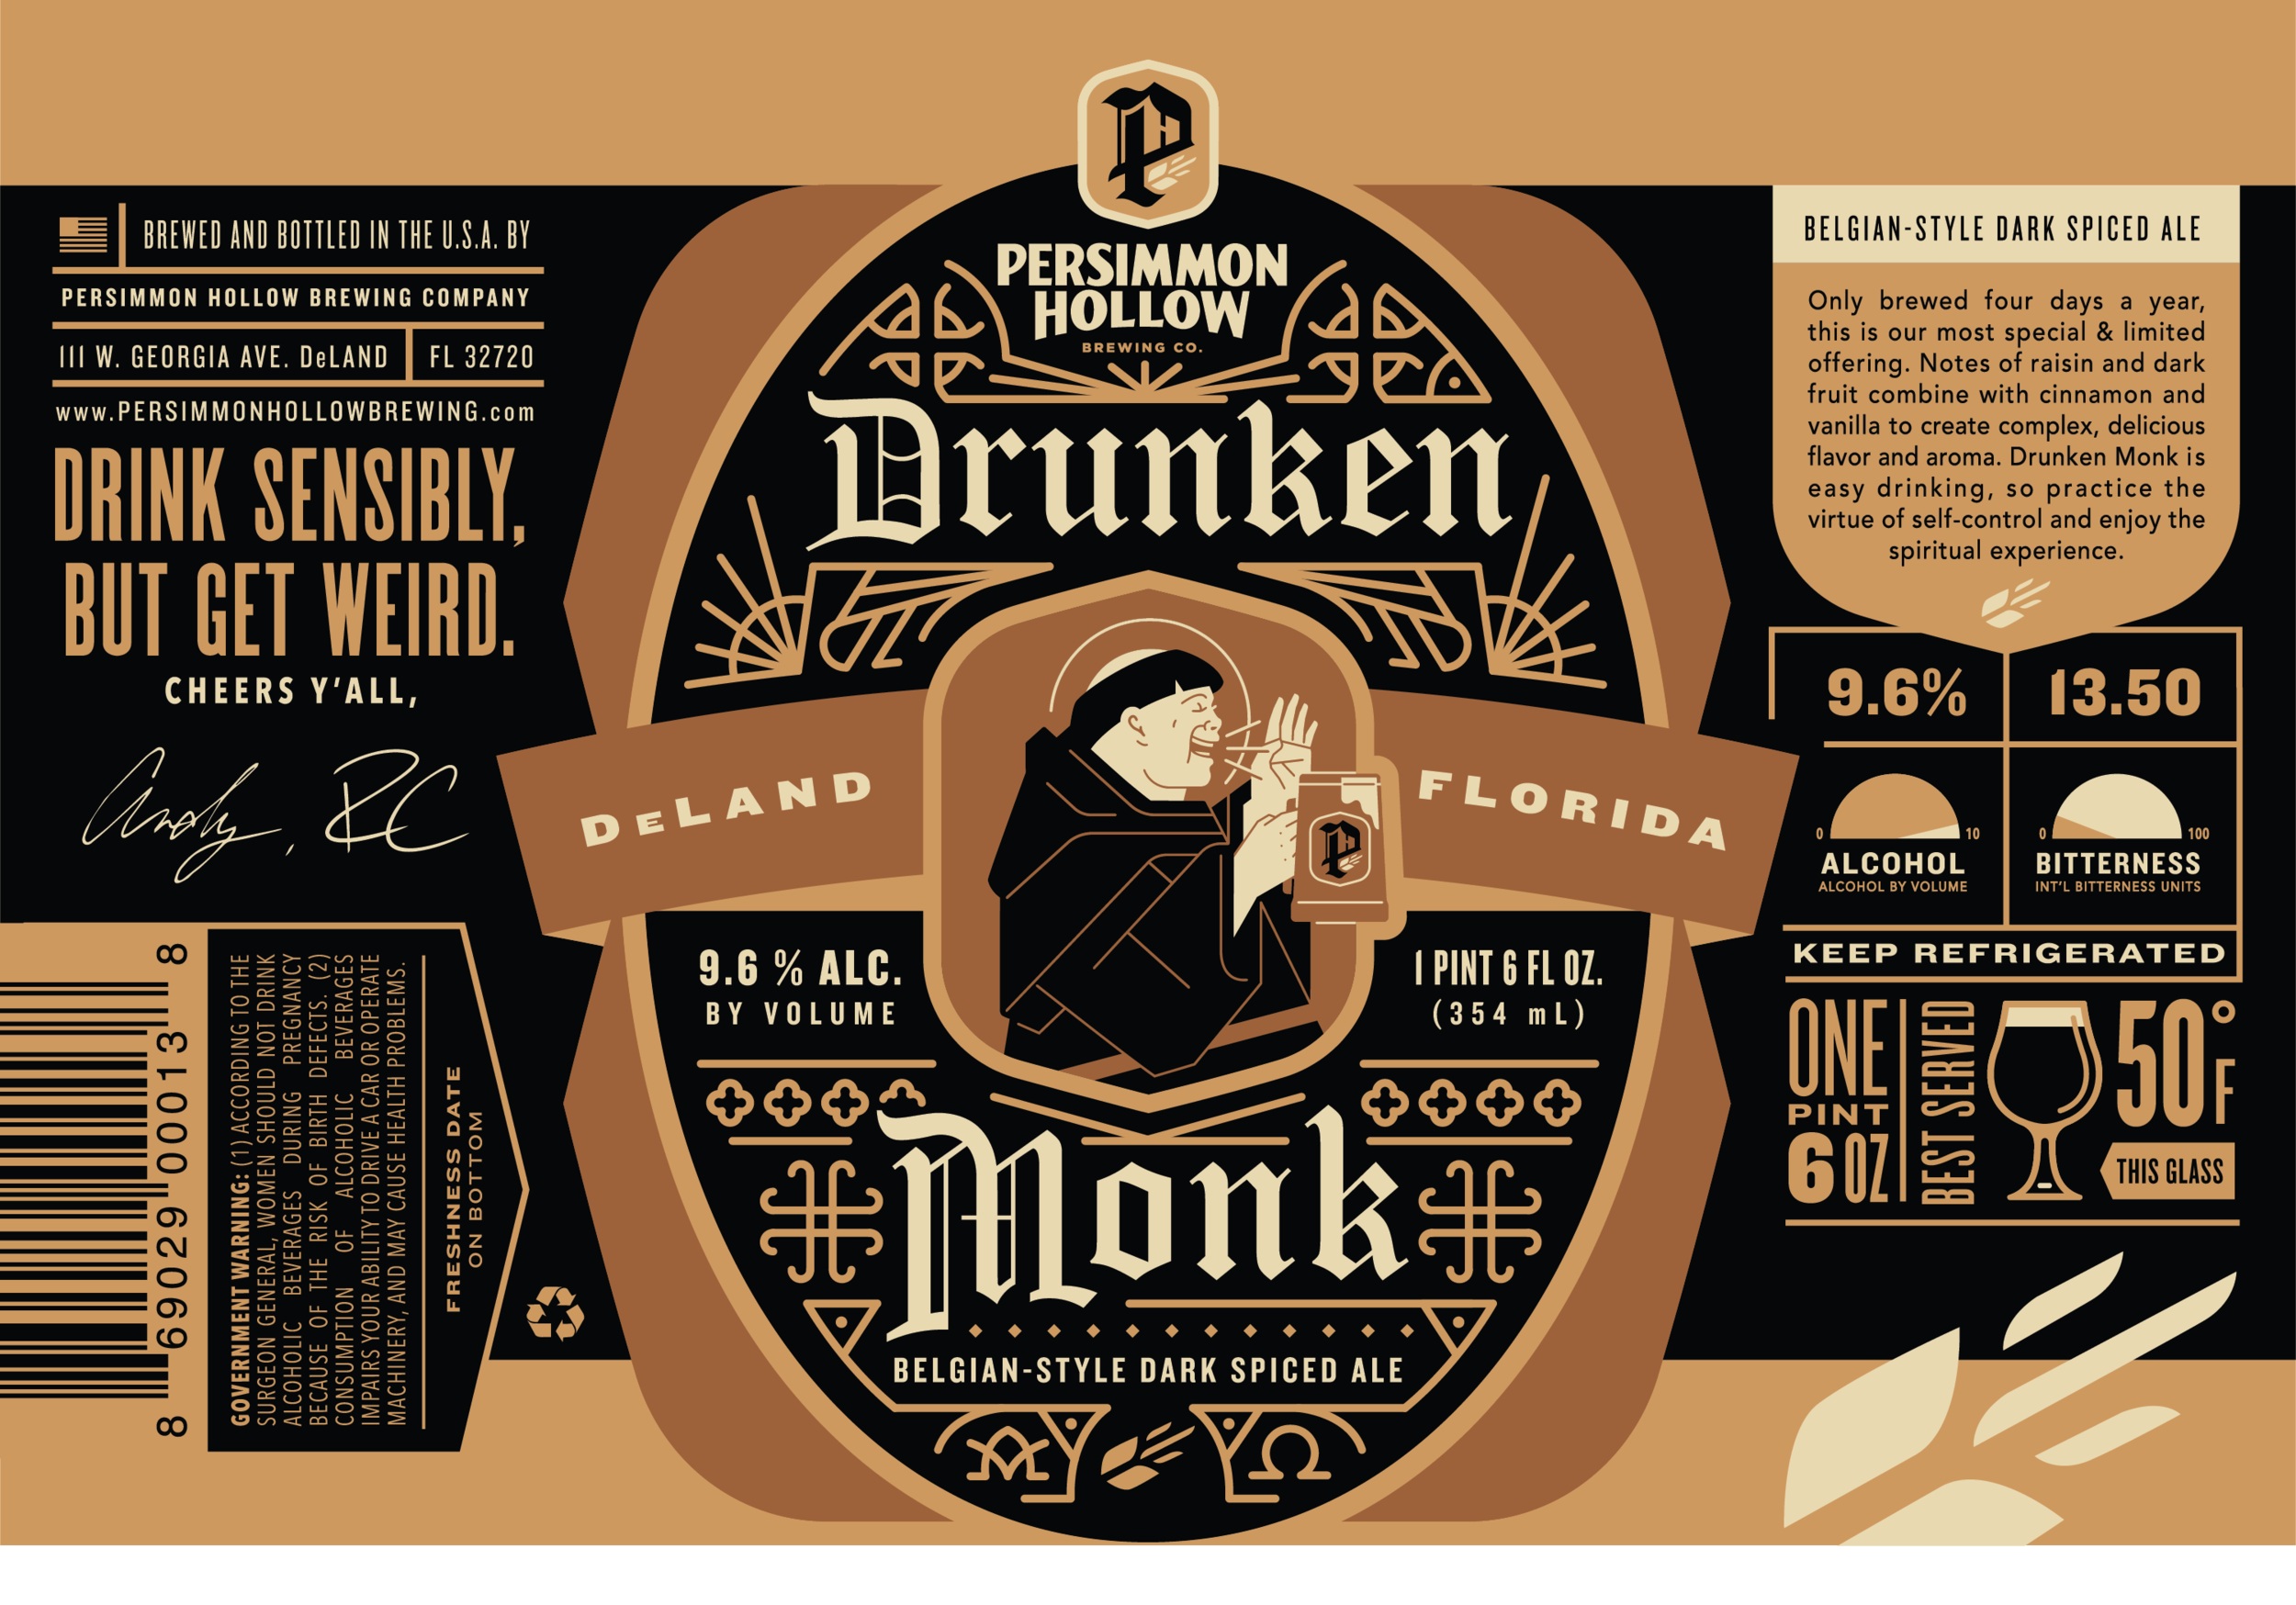 Copy of Drunken Monk Bottle Label